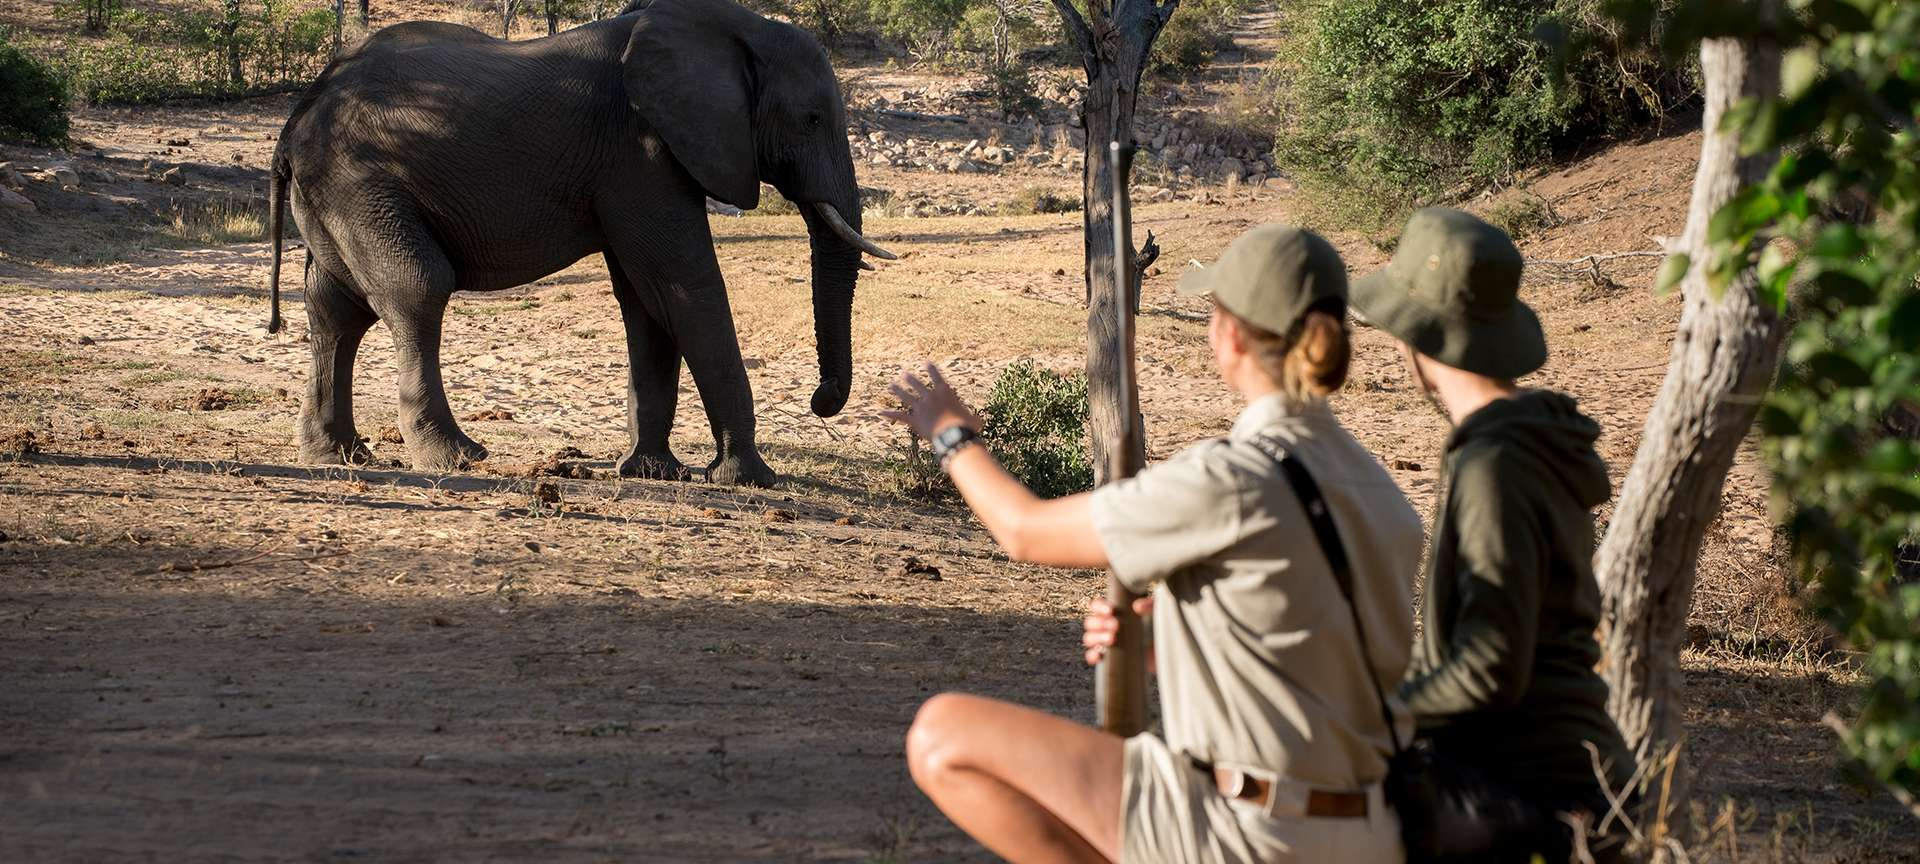 Walking safaris in the Kruger National Park - Africa Wildlife Safaris